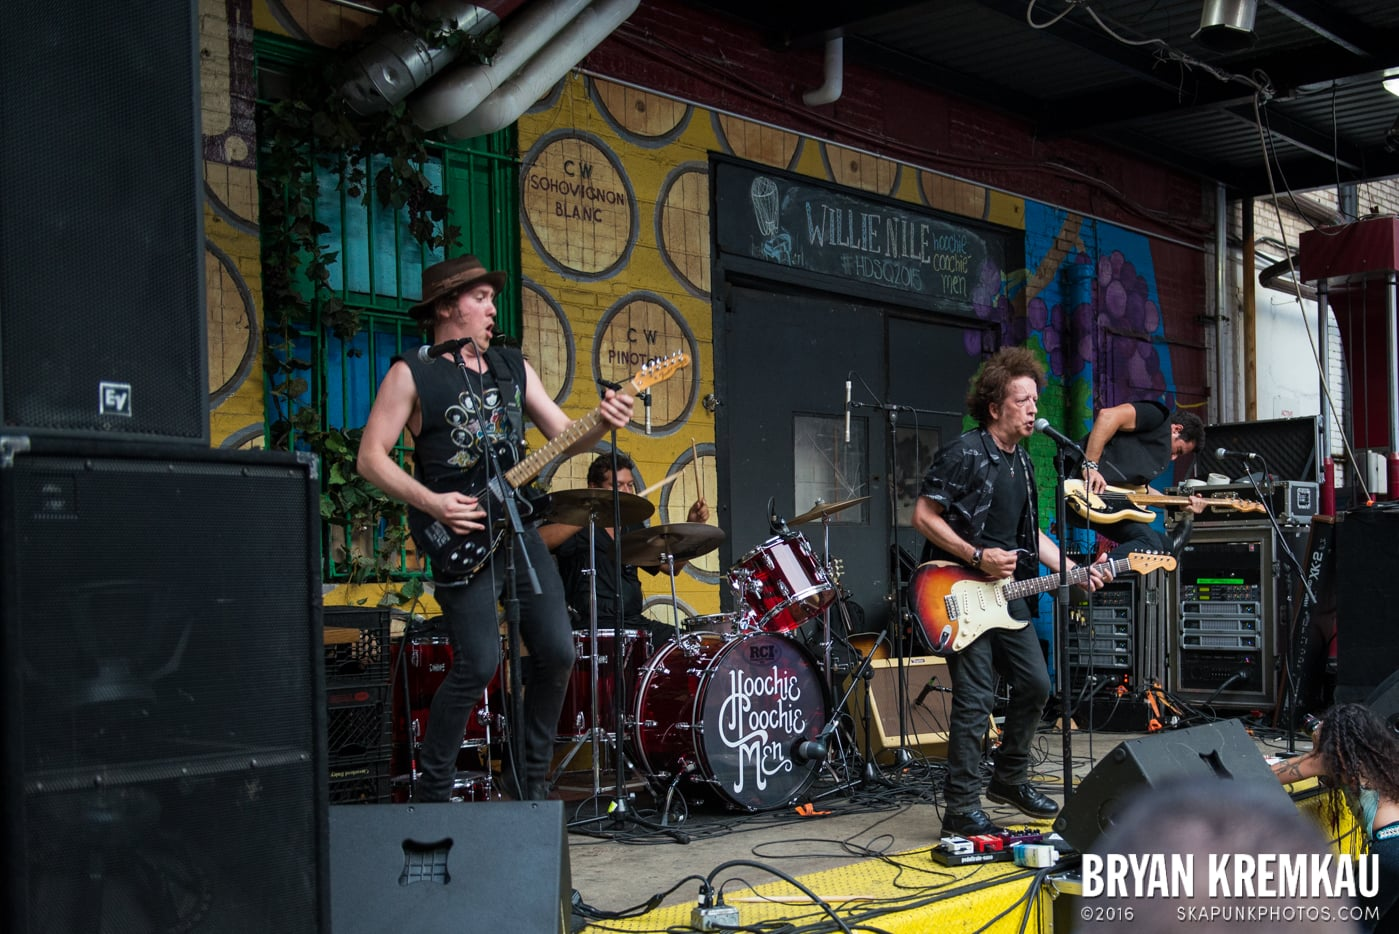 Willie Nile @ City Winery Hudson Square, NYC (4)